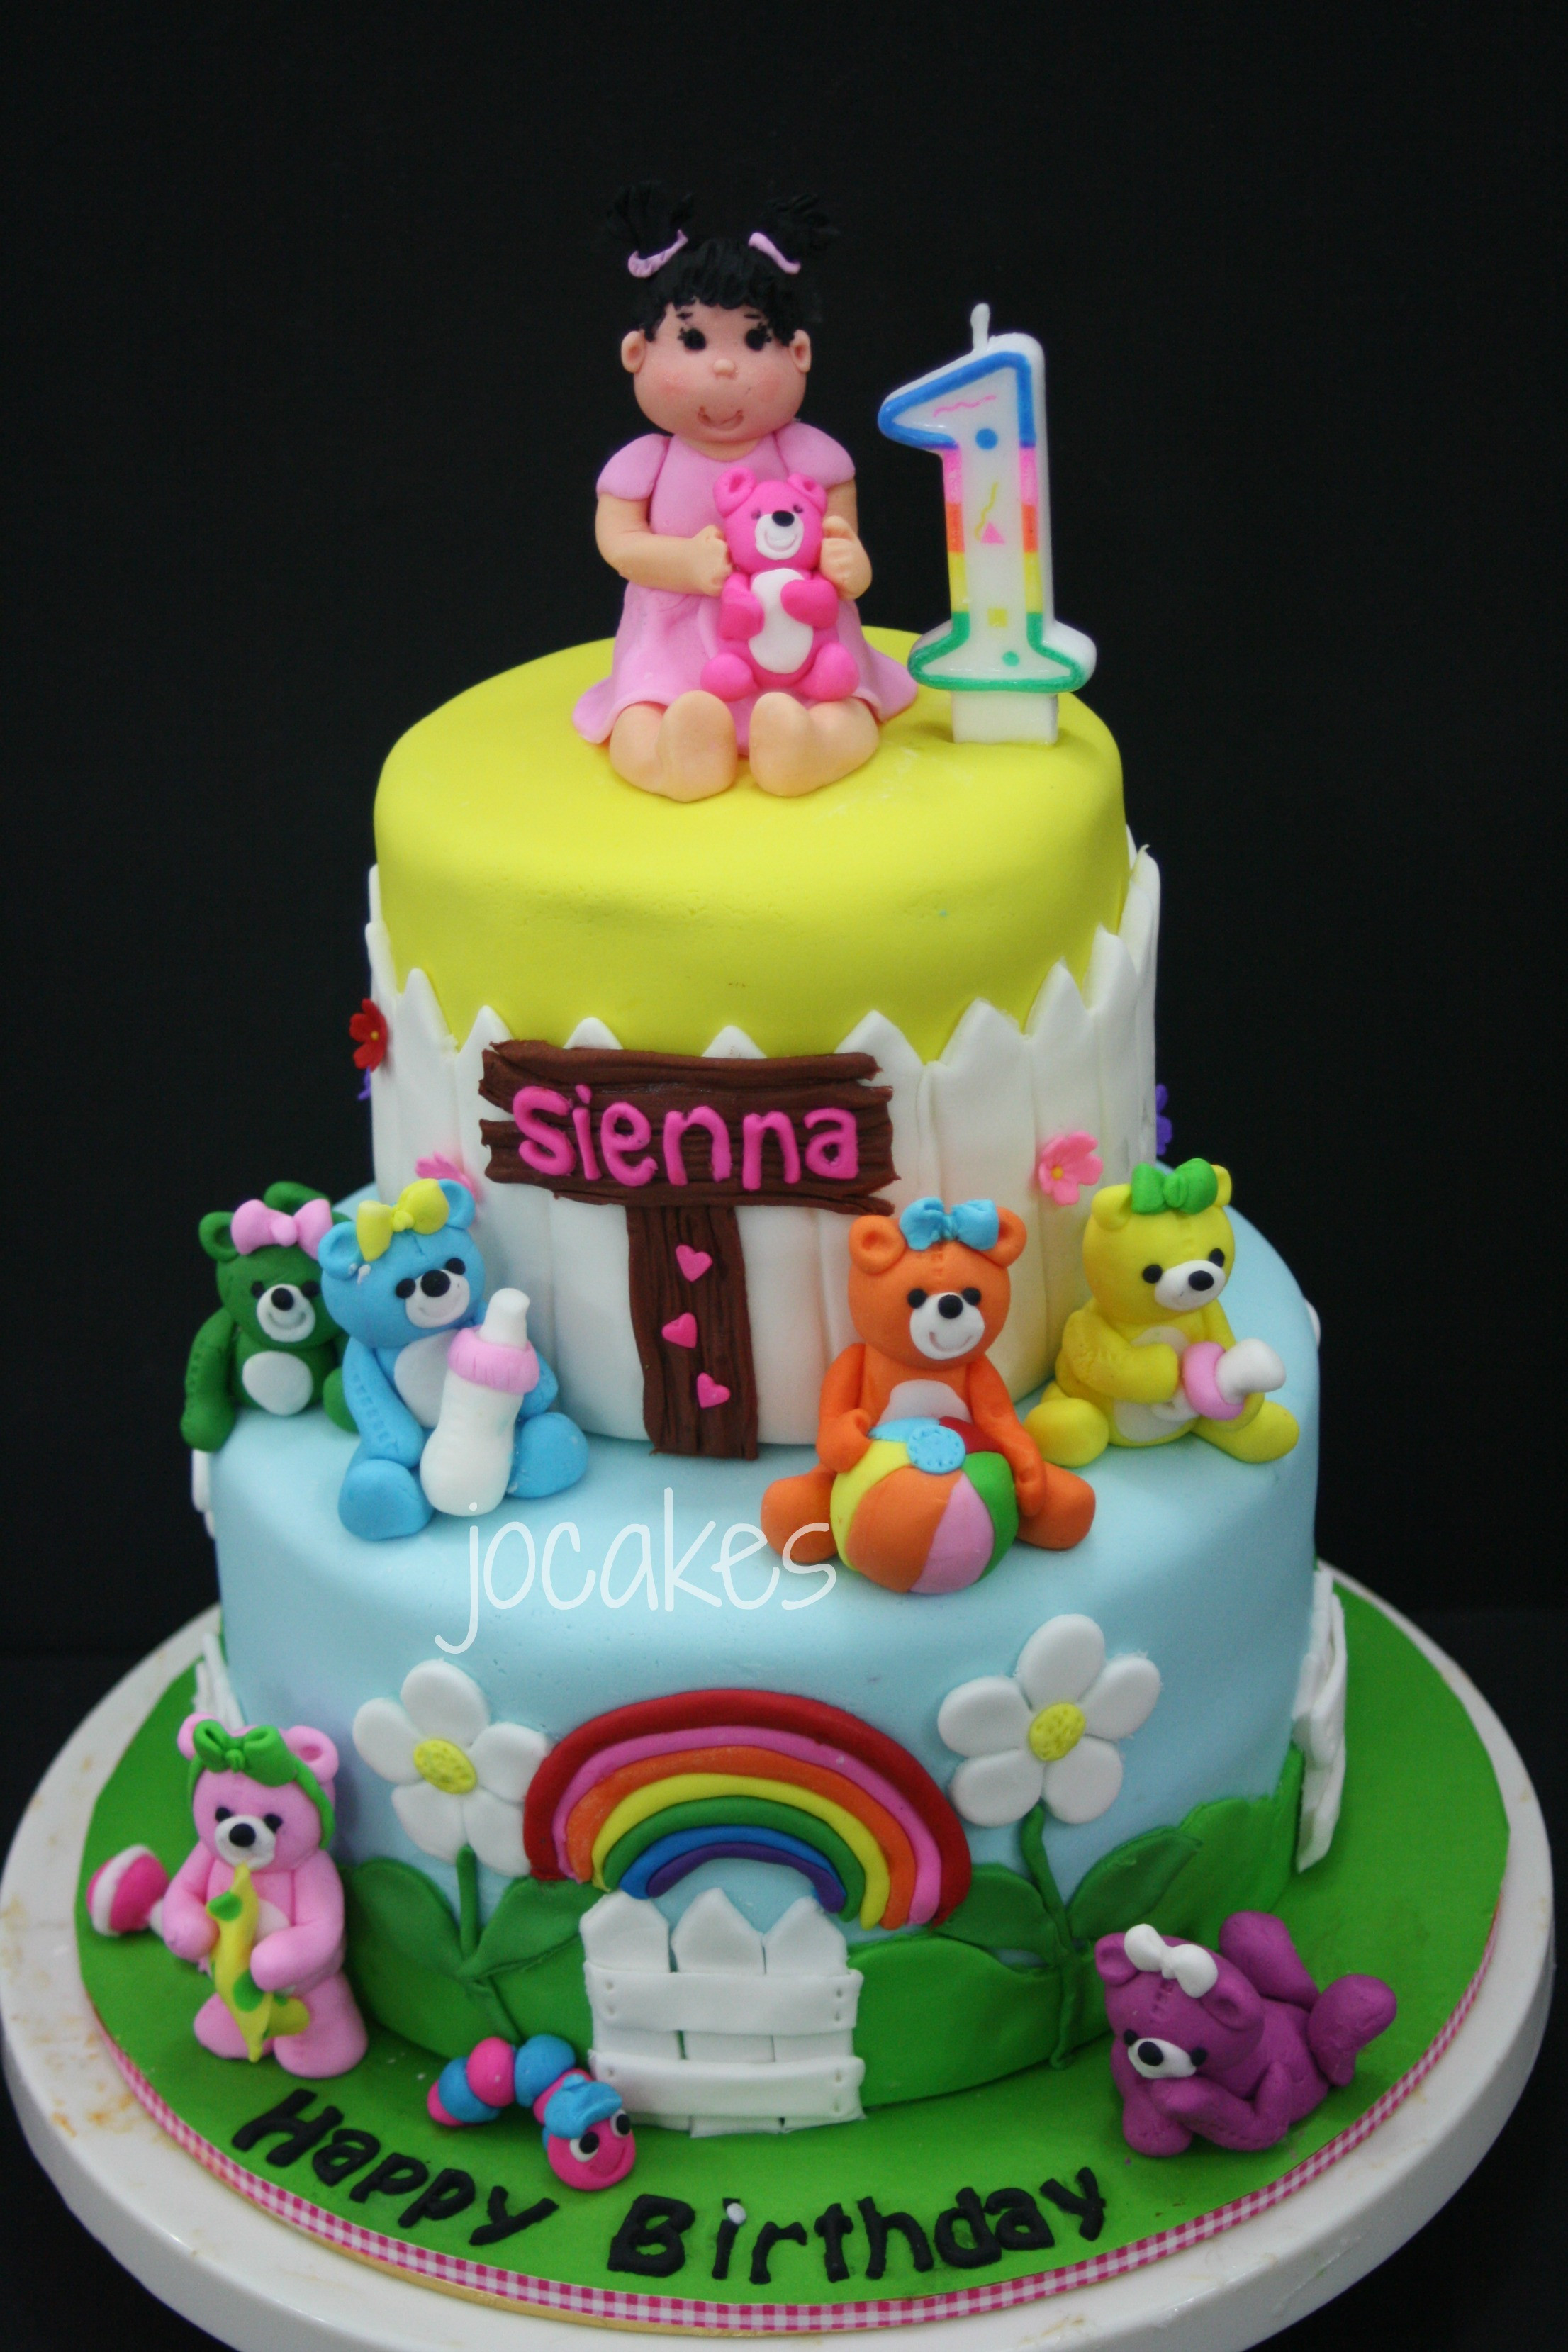 Best ideas about 1 Year Old Birthday Cake . Save or Pin 2 year old birthday cake Now.